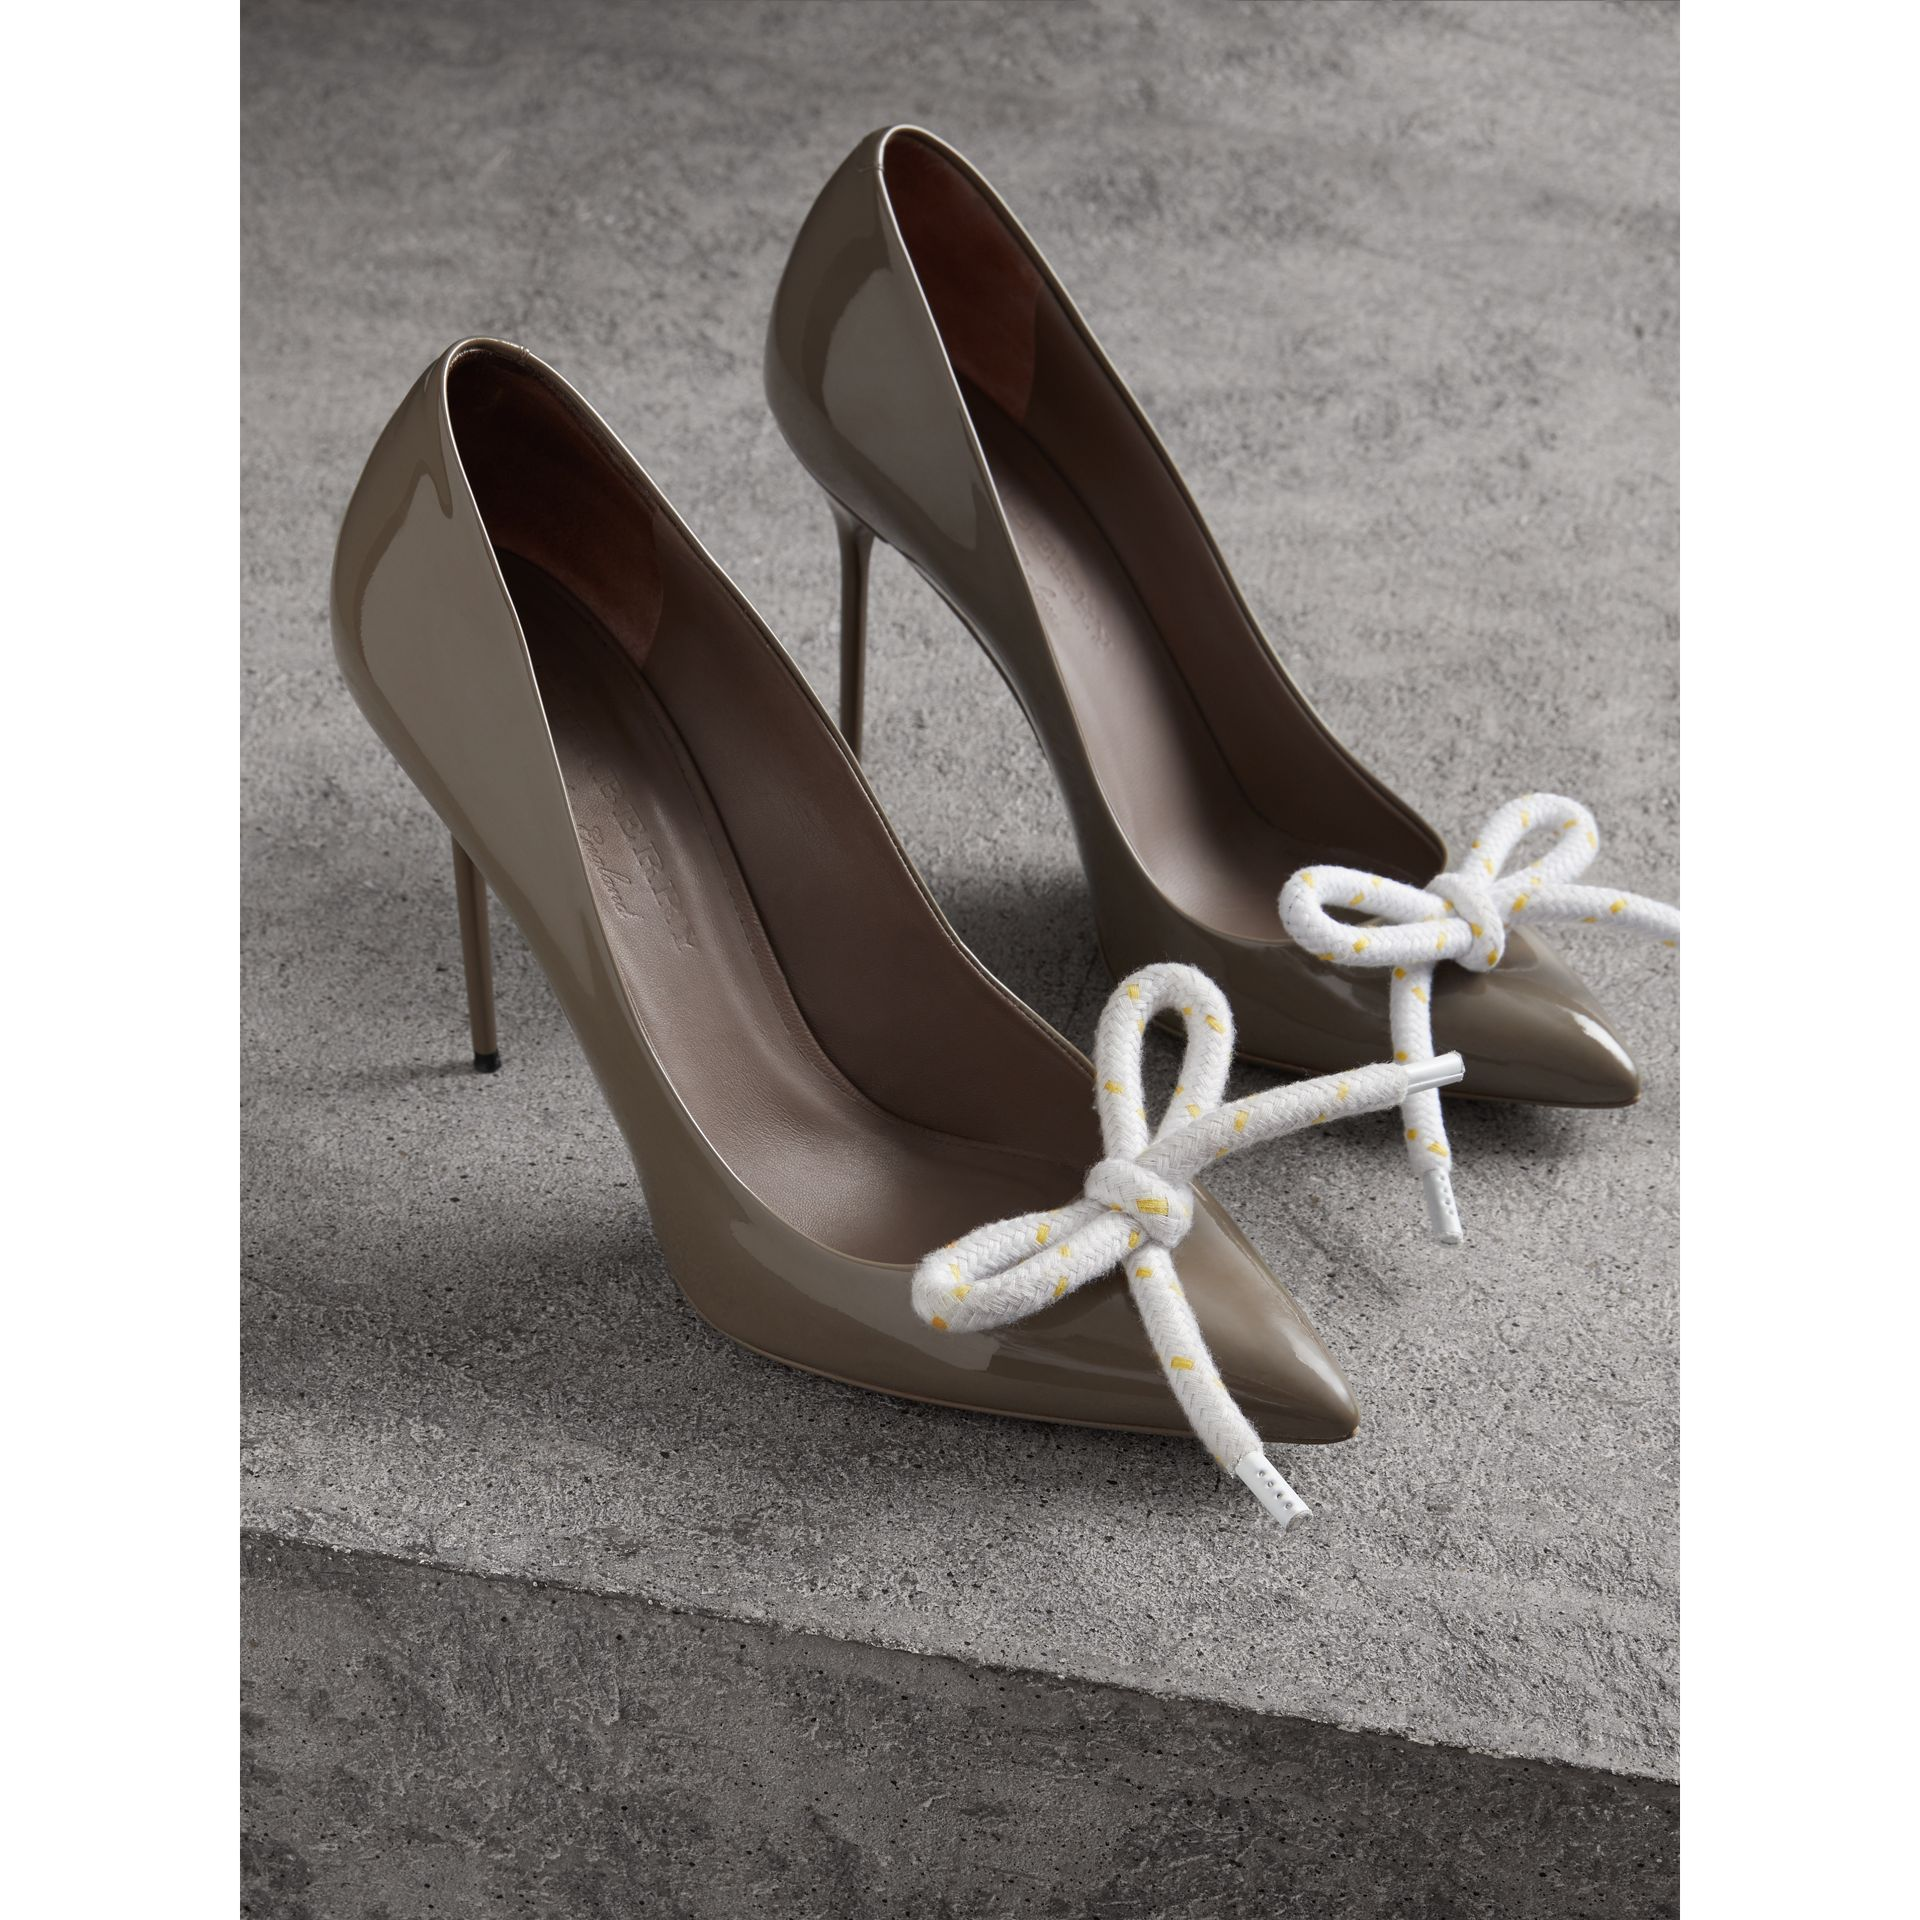 Stiletto-Pumps aus Lackleder mit Kordeldetail (Taupe-grau) - Damen | Burberry - Galerie-Bild 4